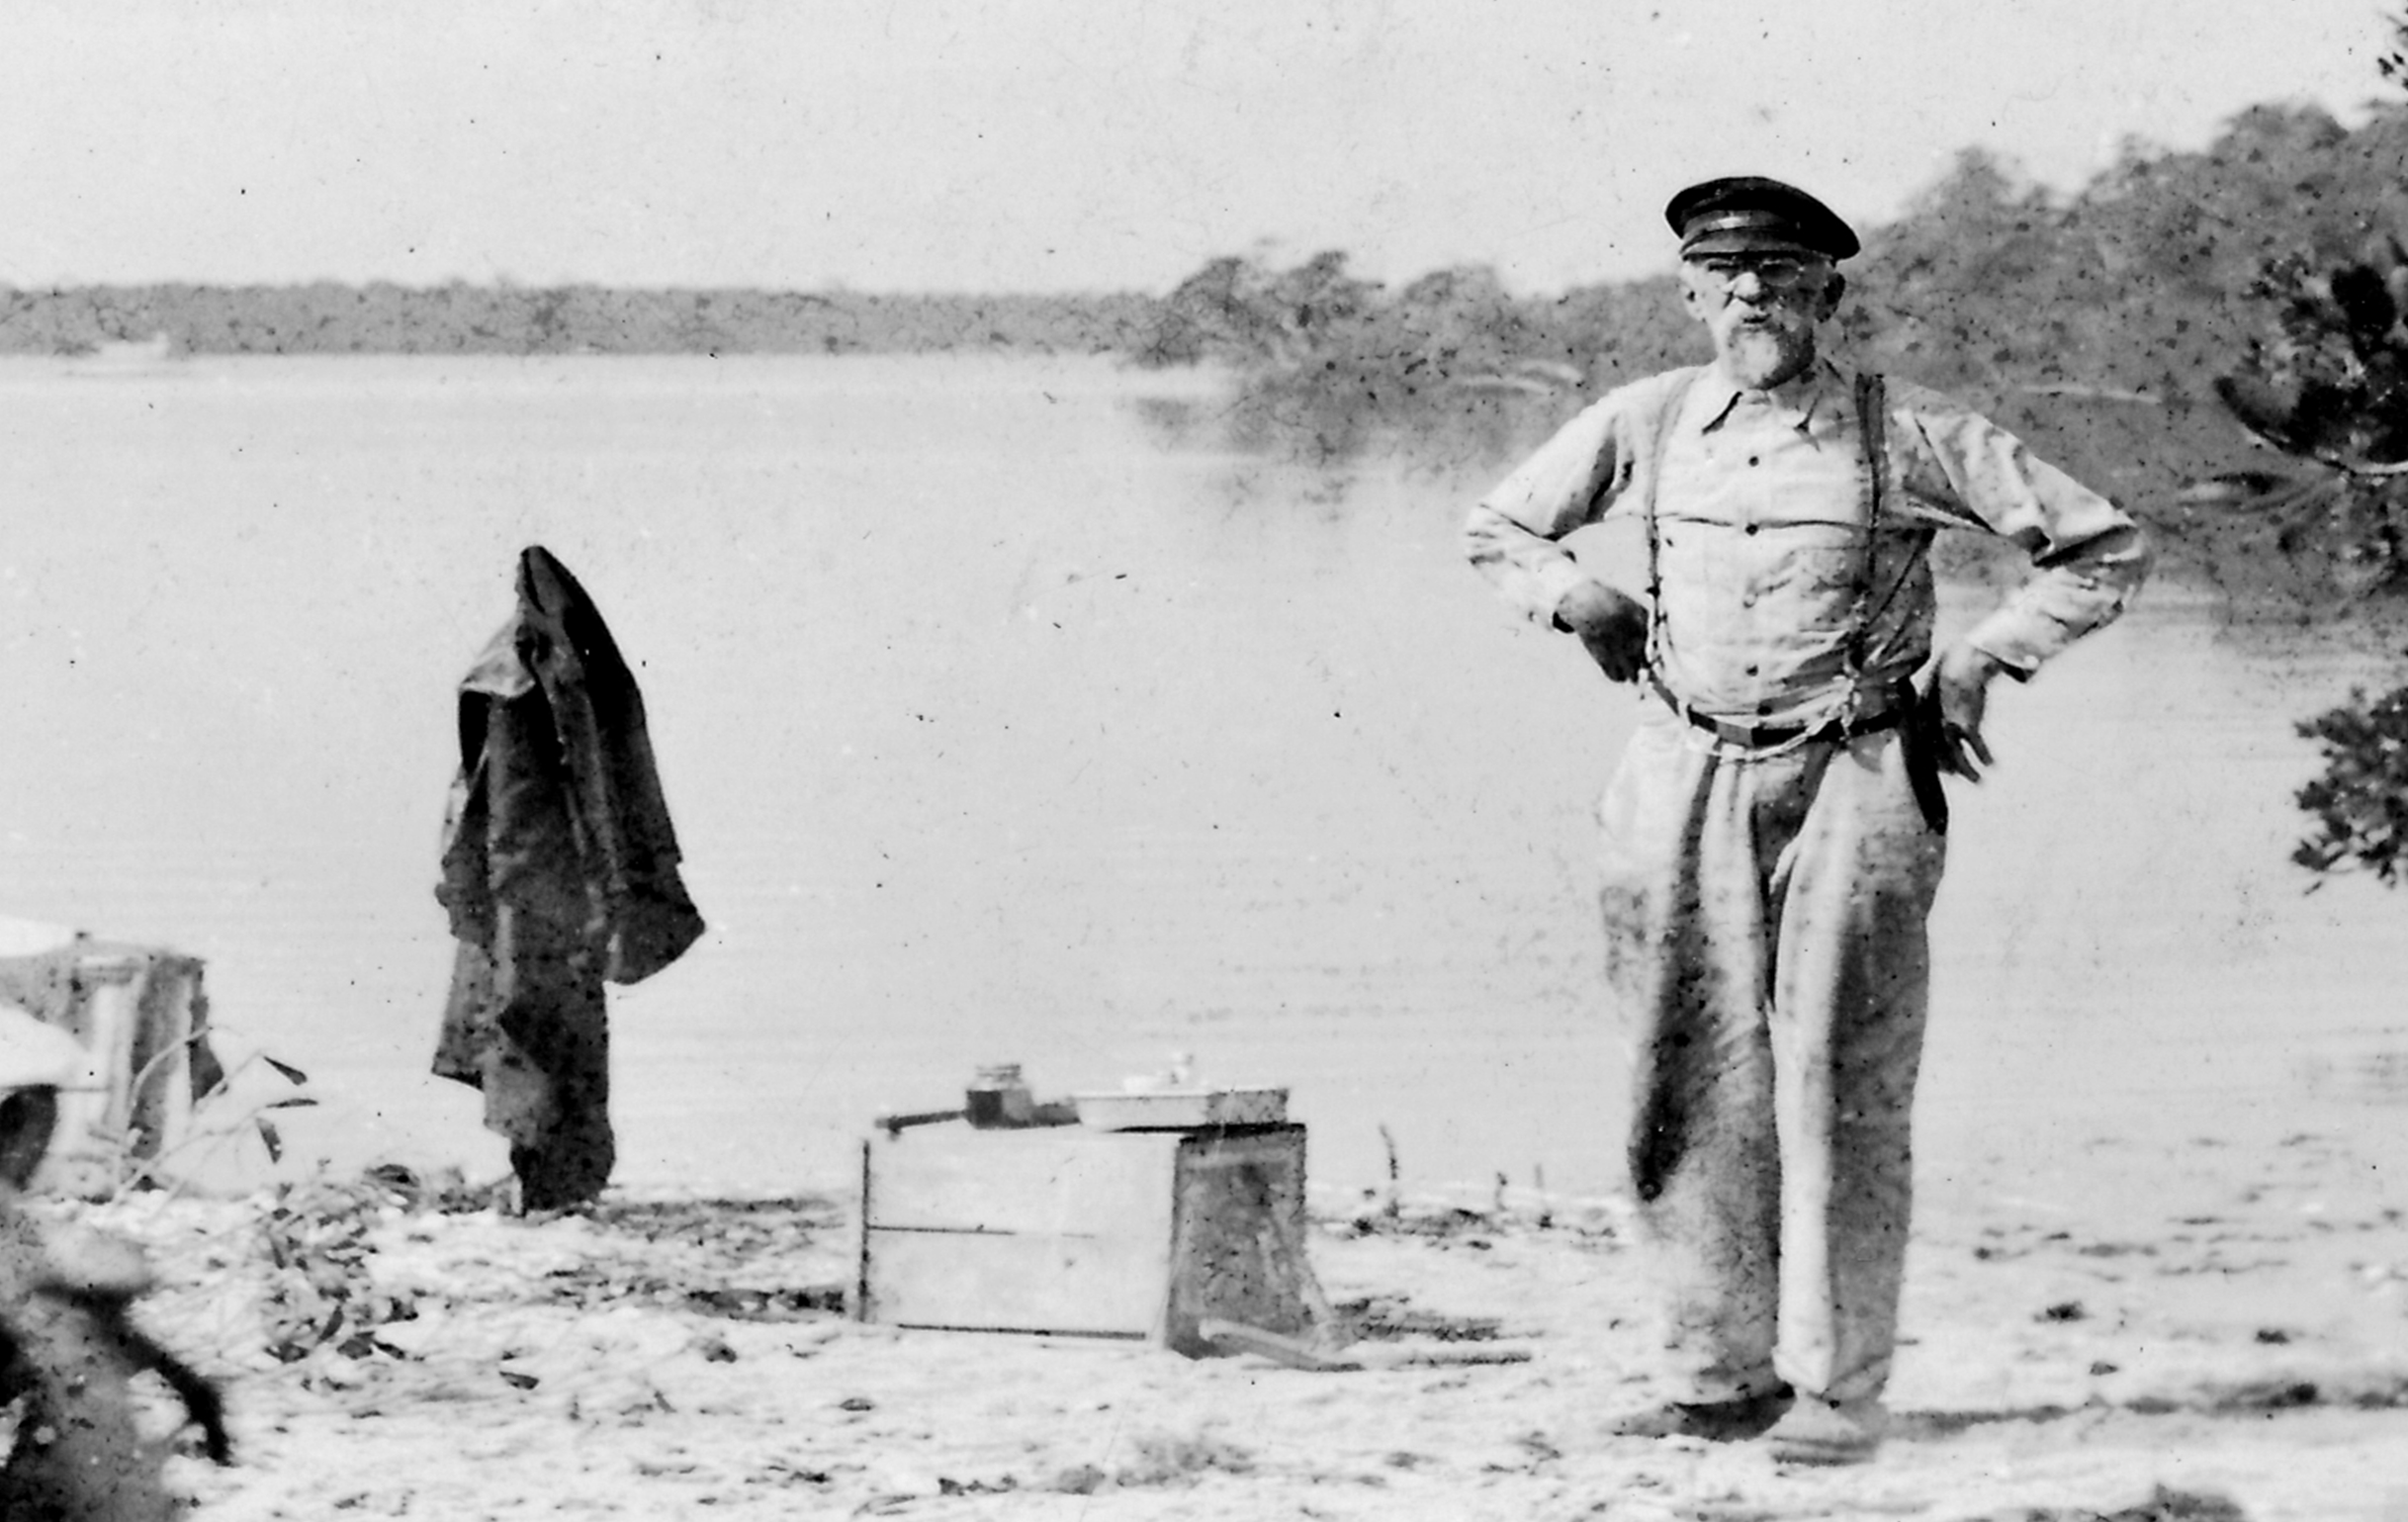 Charles H. Coe At oyster roast on pecks lake Stuar